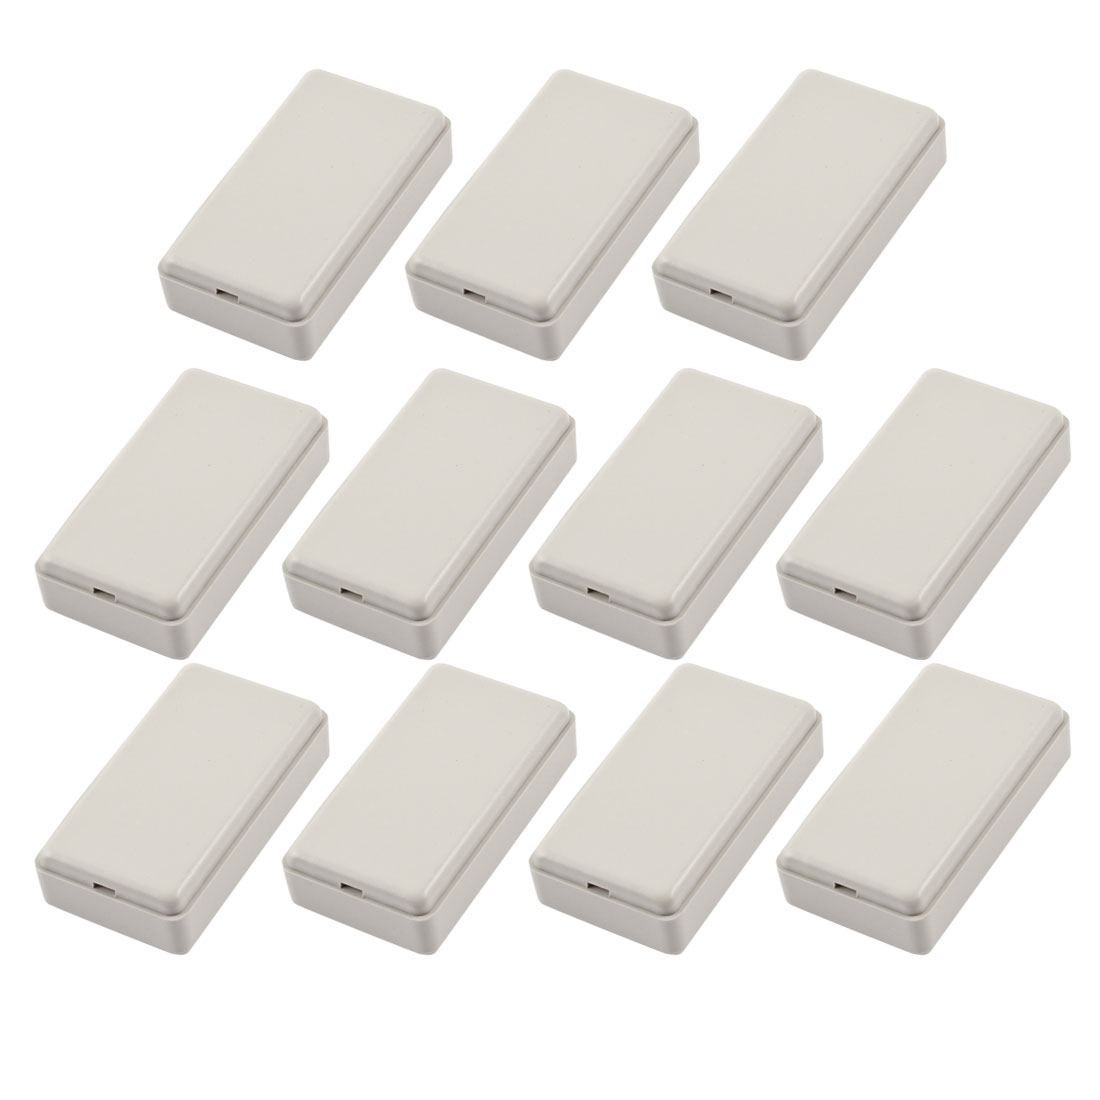 11 Pcs 50mmx27mmx14mm Rectangular Cable Connect Plastic Enclosure Junction Box